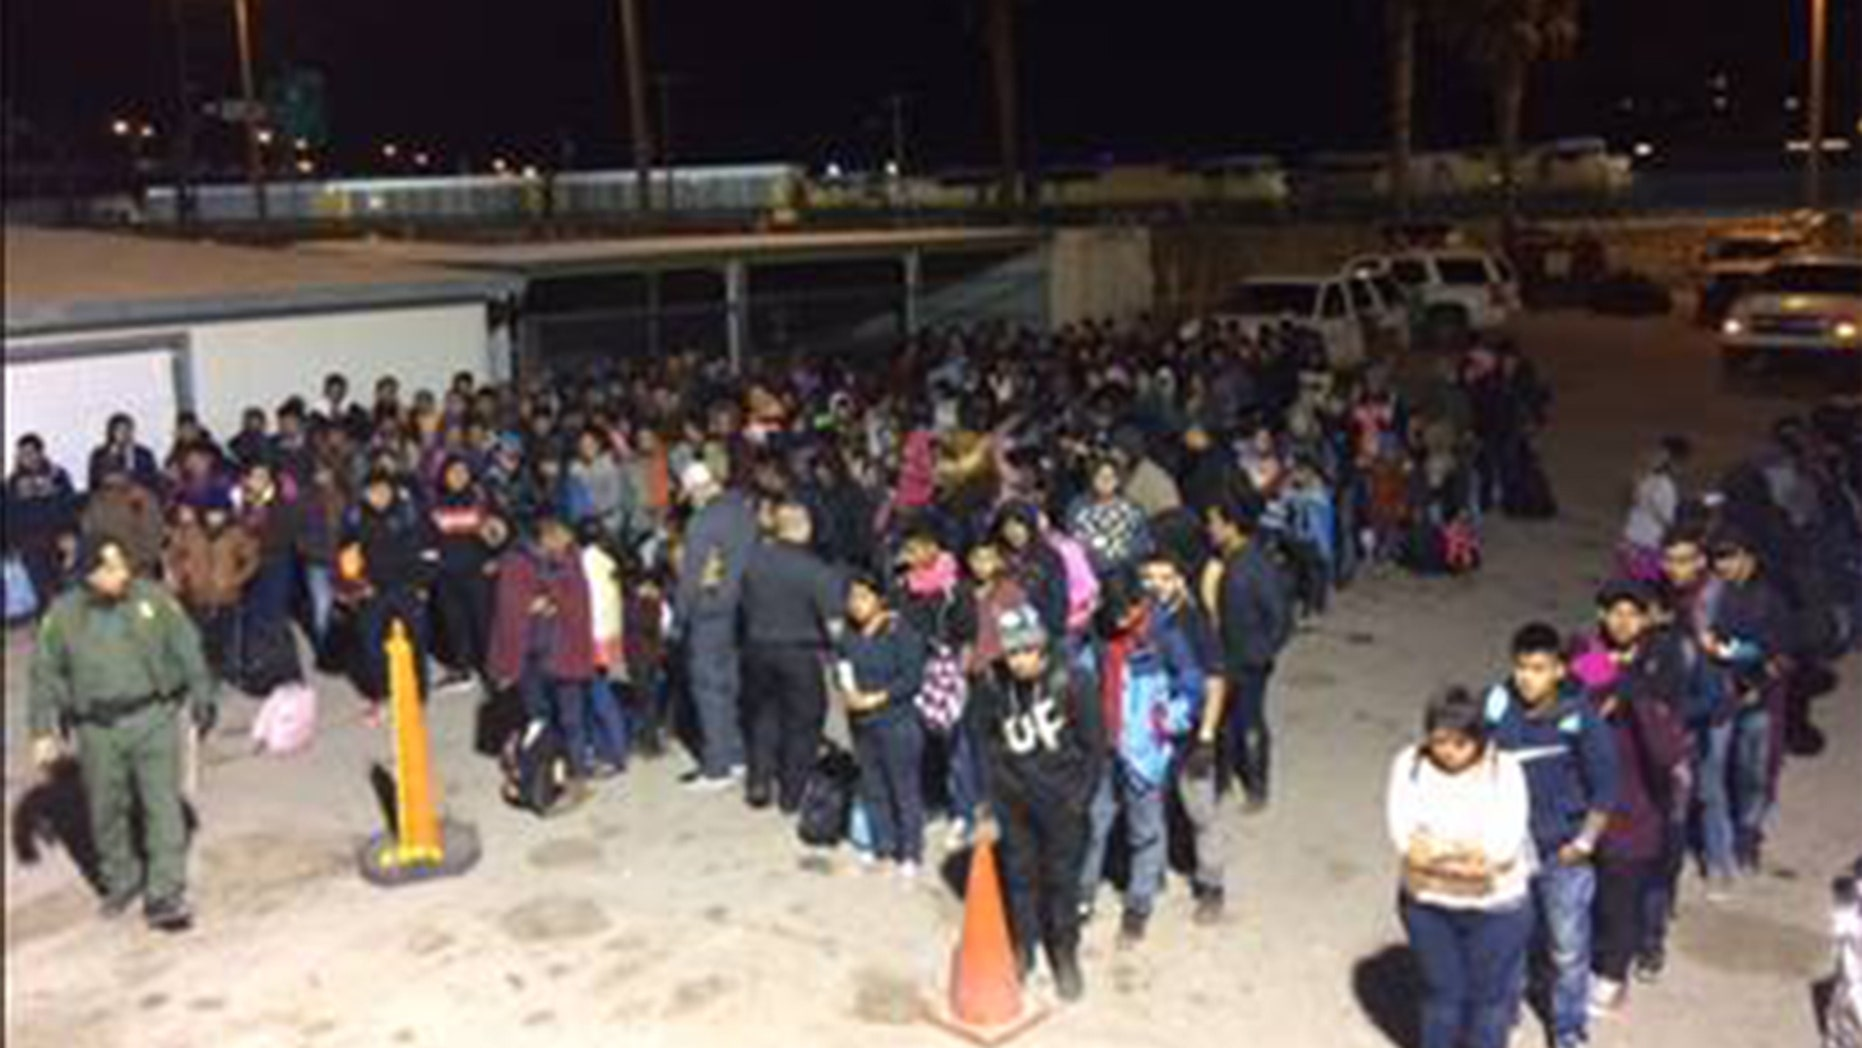 U.S. Border Patrol agents working in El Paso apprehended two large groups of illegal immigrants over 400 people within five minutes.